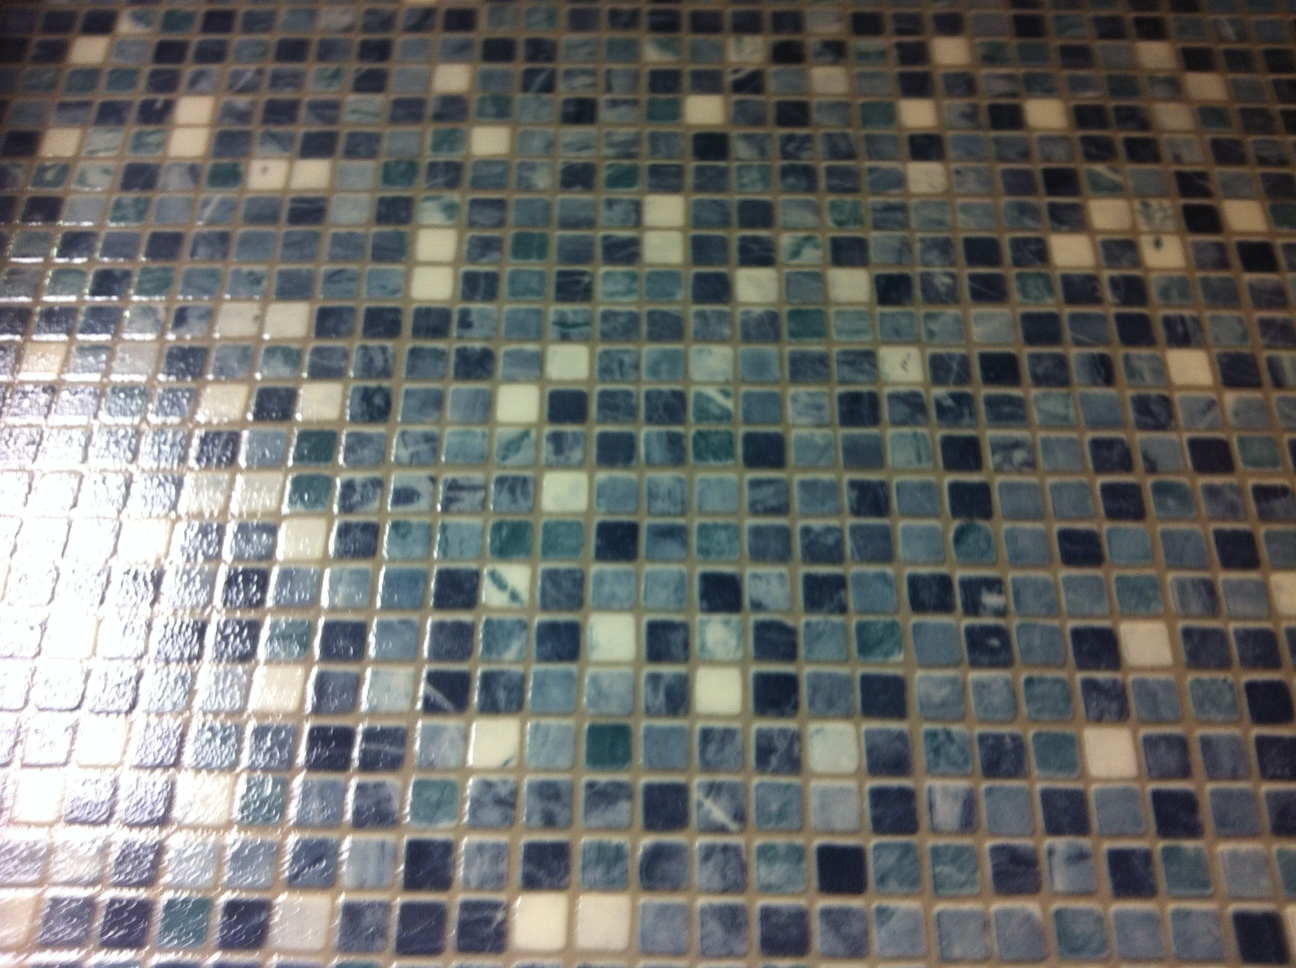 floor-design-interior-good-looking-blue-aqua-vinyl-mosaic-tile-for-bathroom-flooring-design-ideas-terrific-home-interior-and-flooring-design-with-vinyl-mosaic-tiles